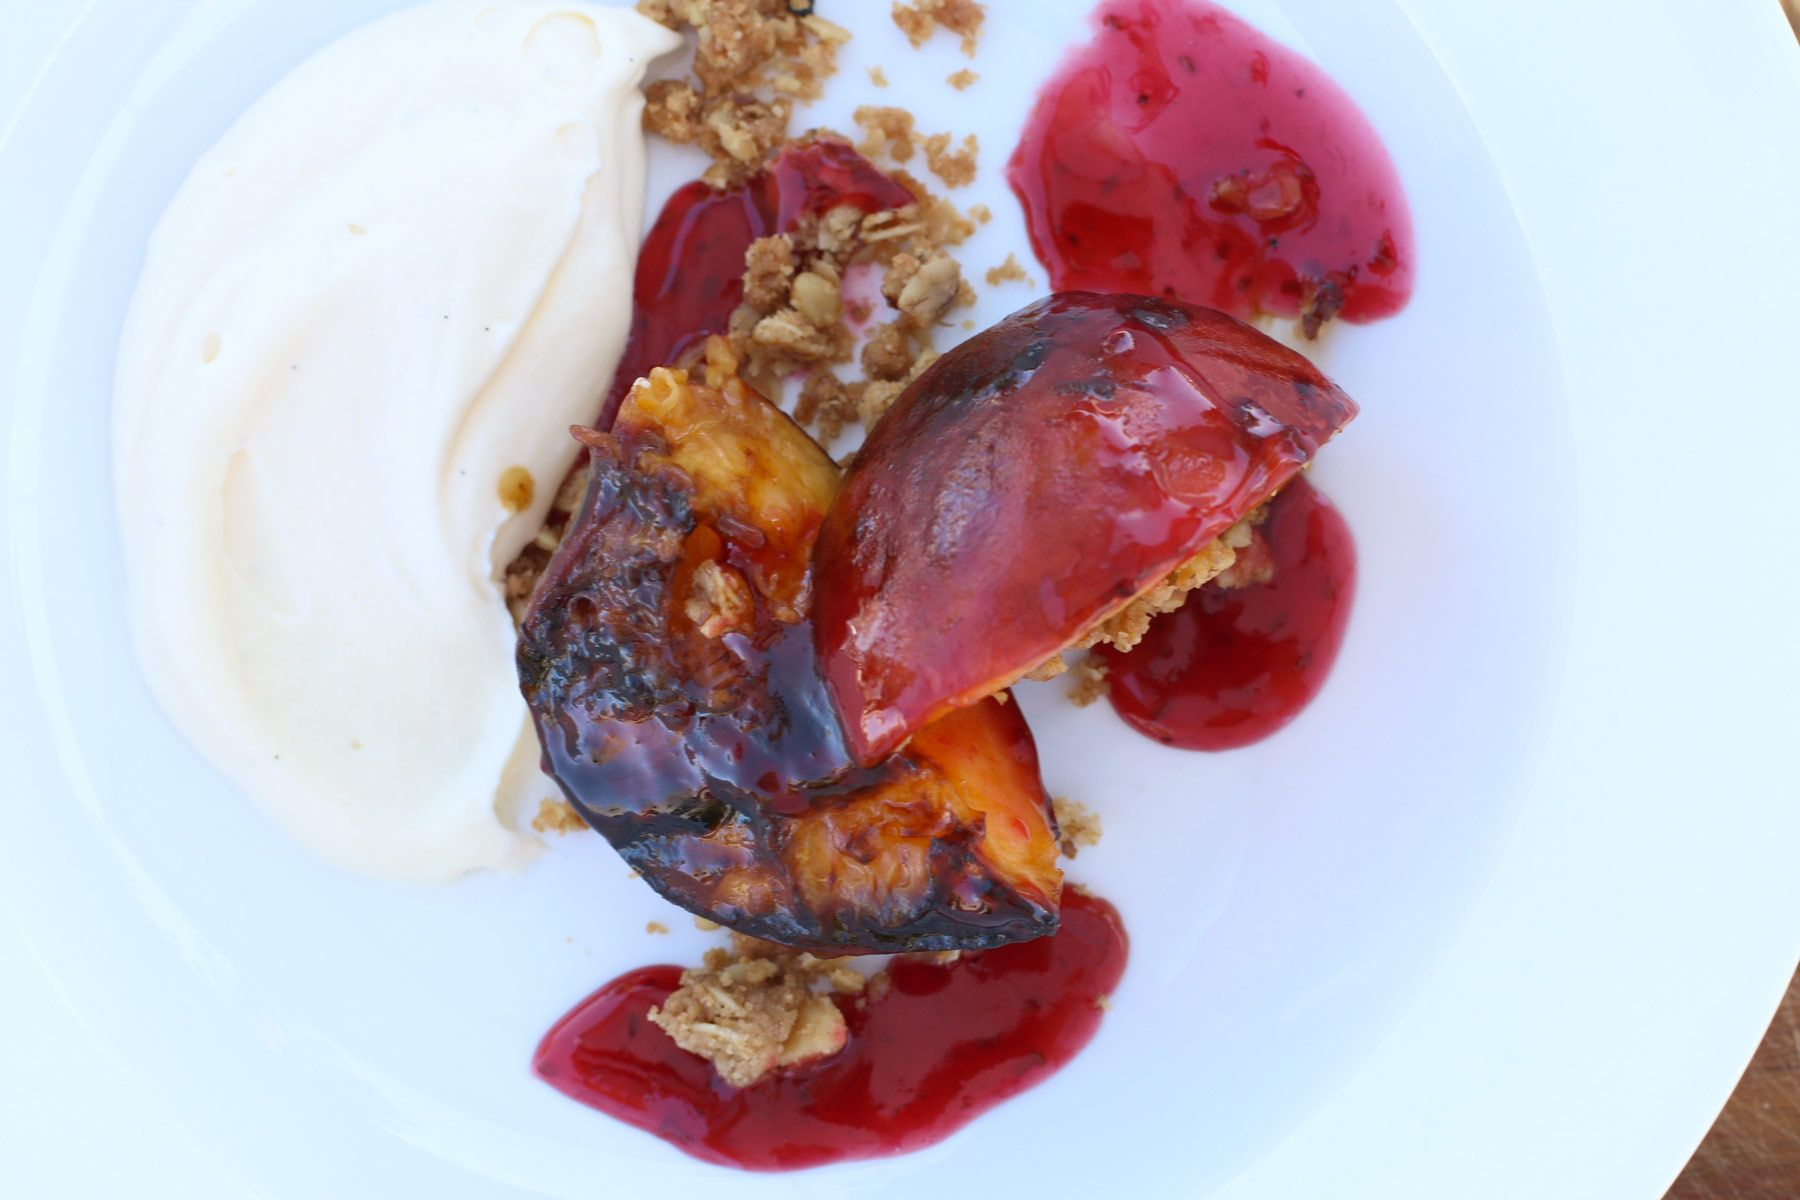 Grilled Peaches with Mascarpone and Raspberry Sauce